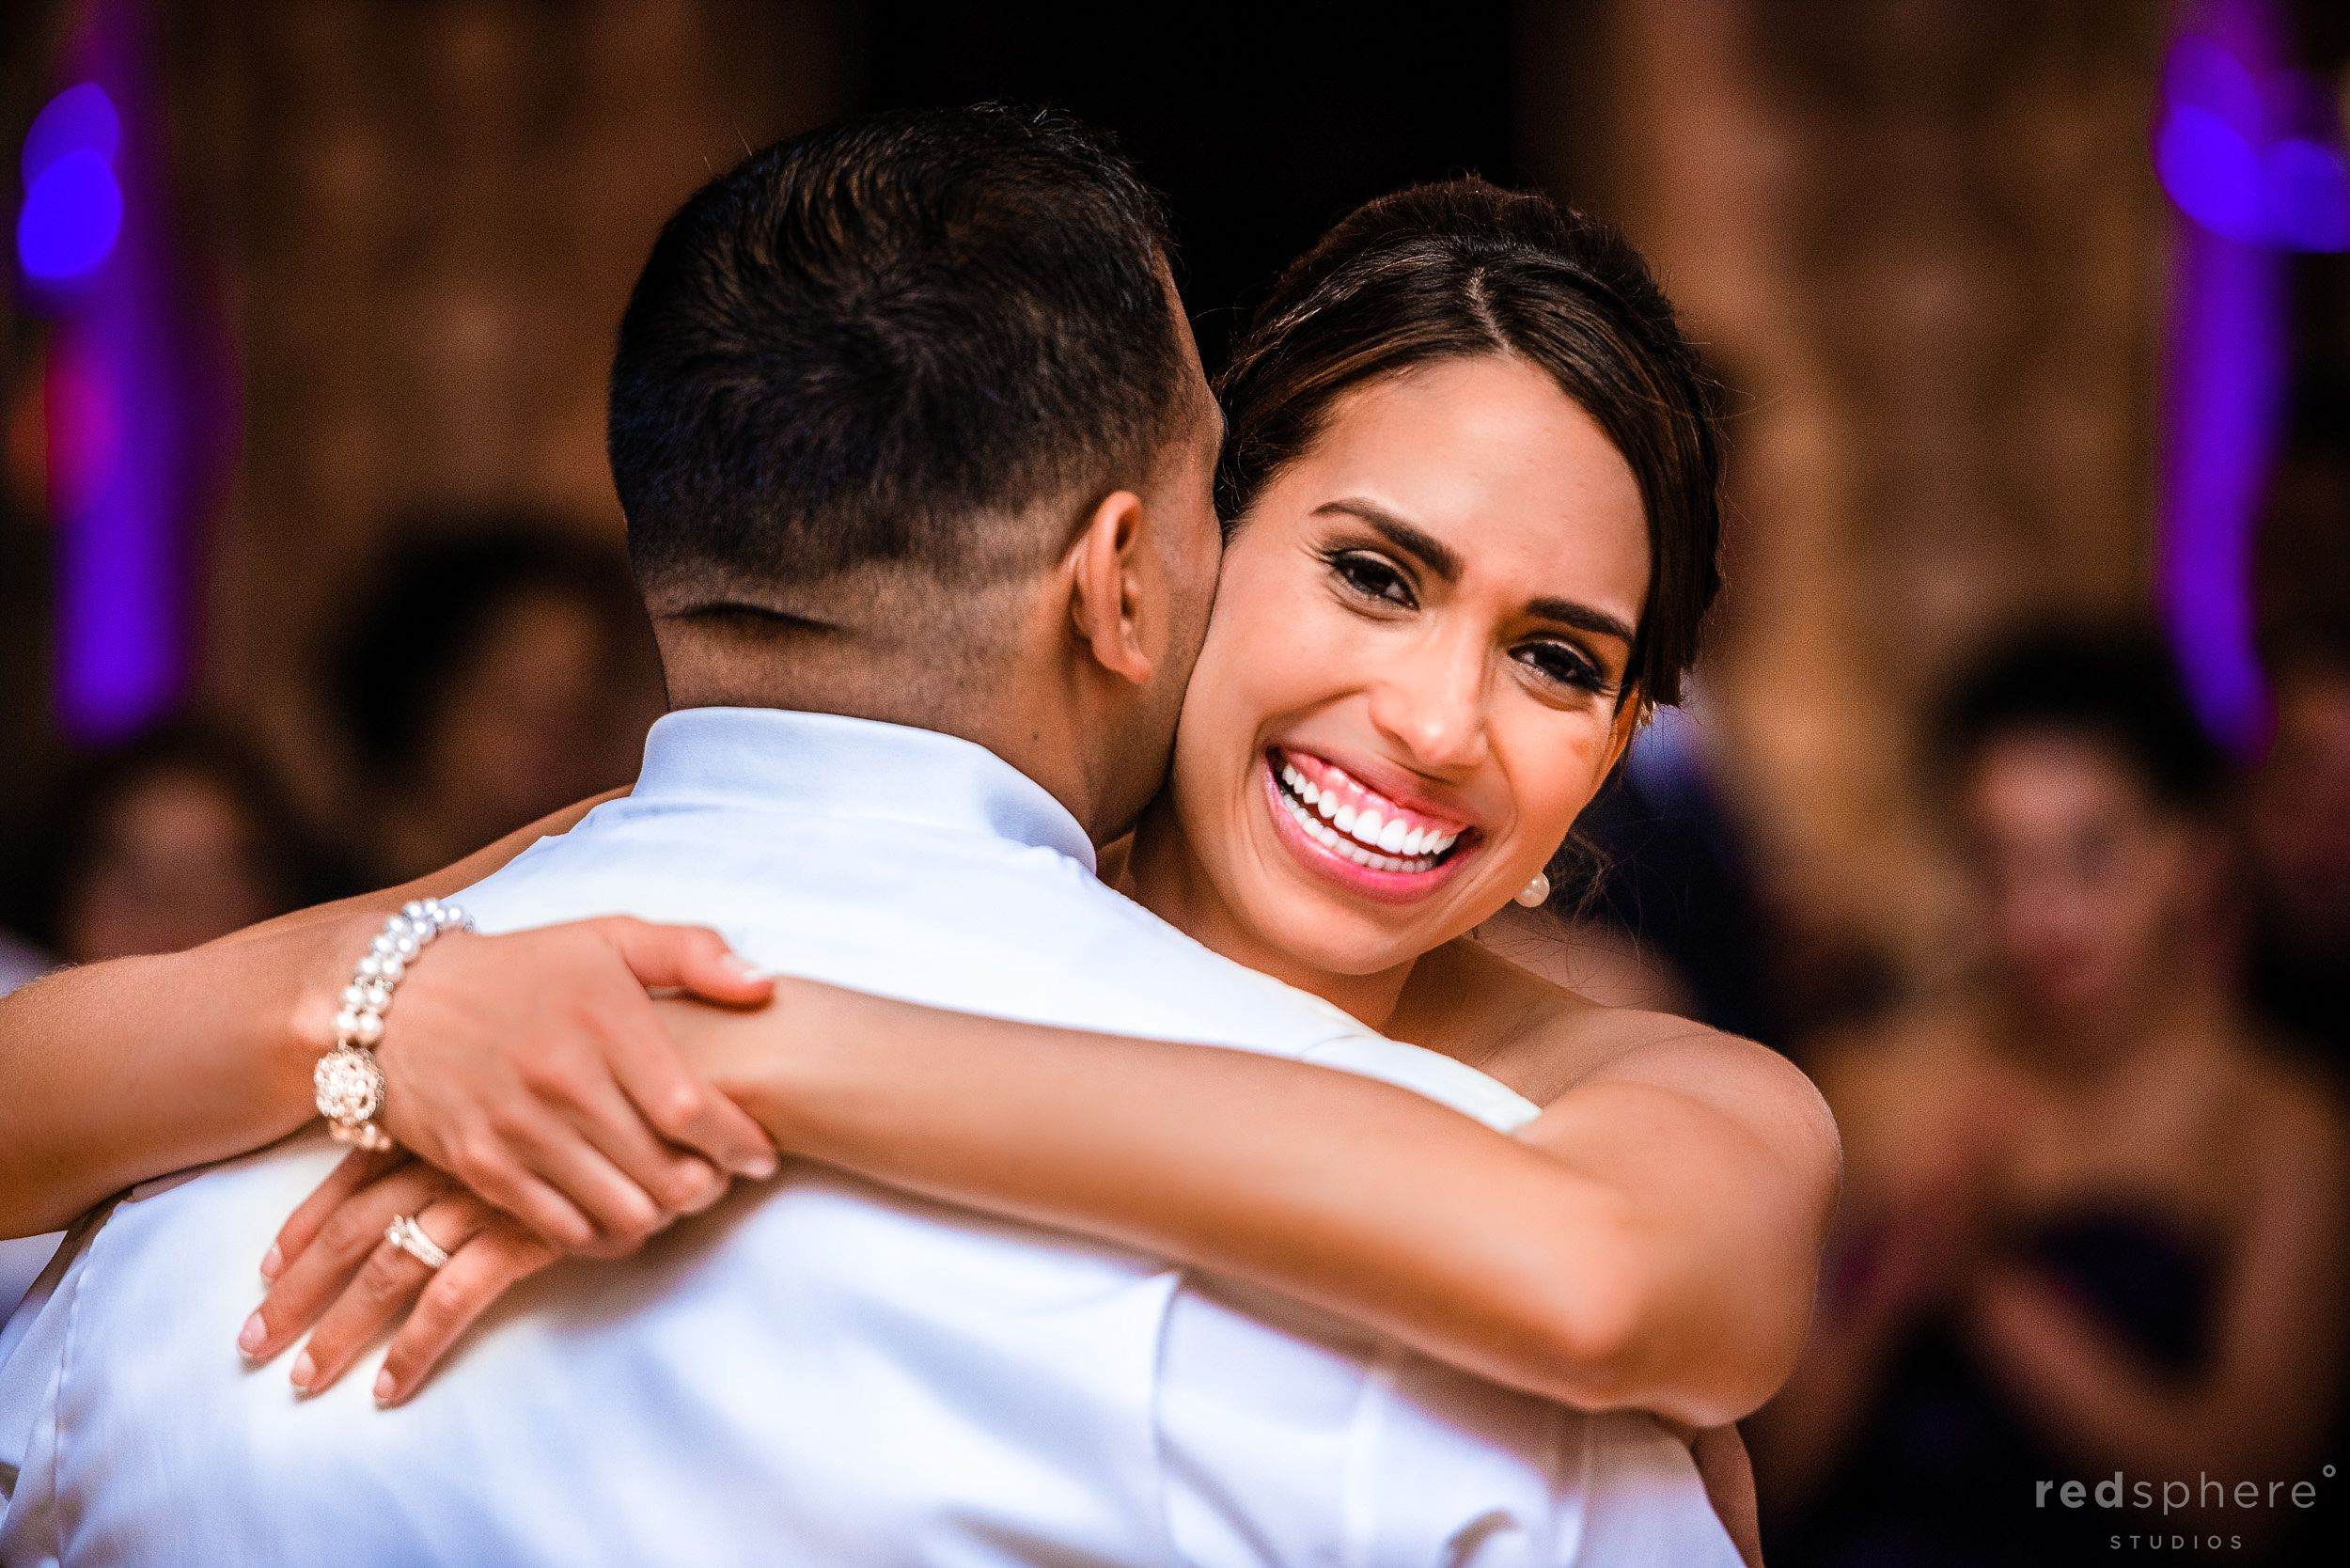 Bride Filled With Smiles as She Dances With Groom